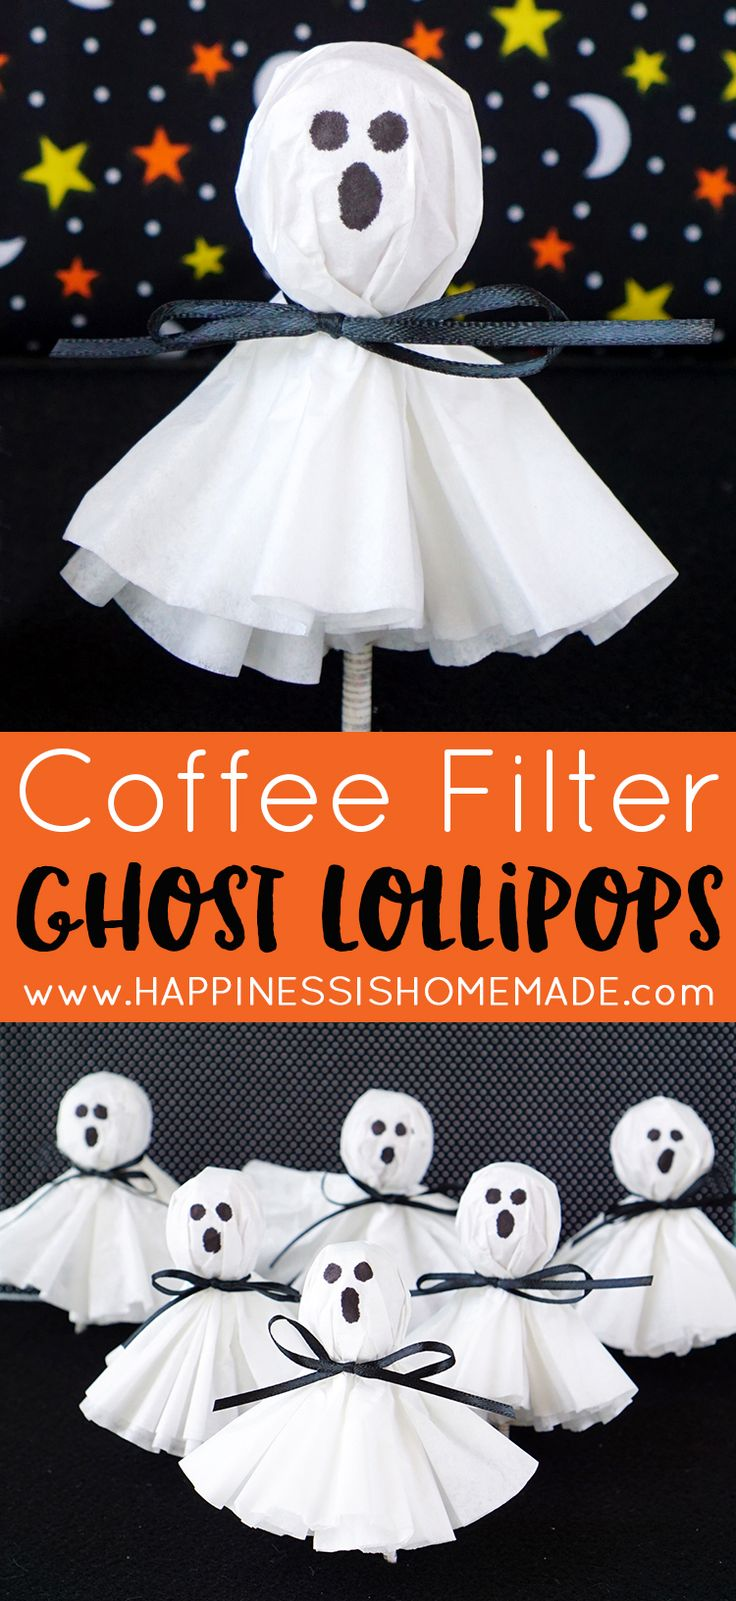 These Coffee Filter Ghost Lollipops Are A Cute And Easy Twist On Classic